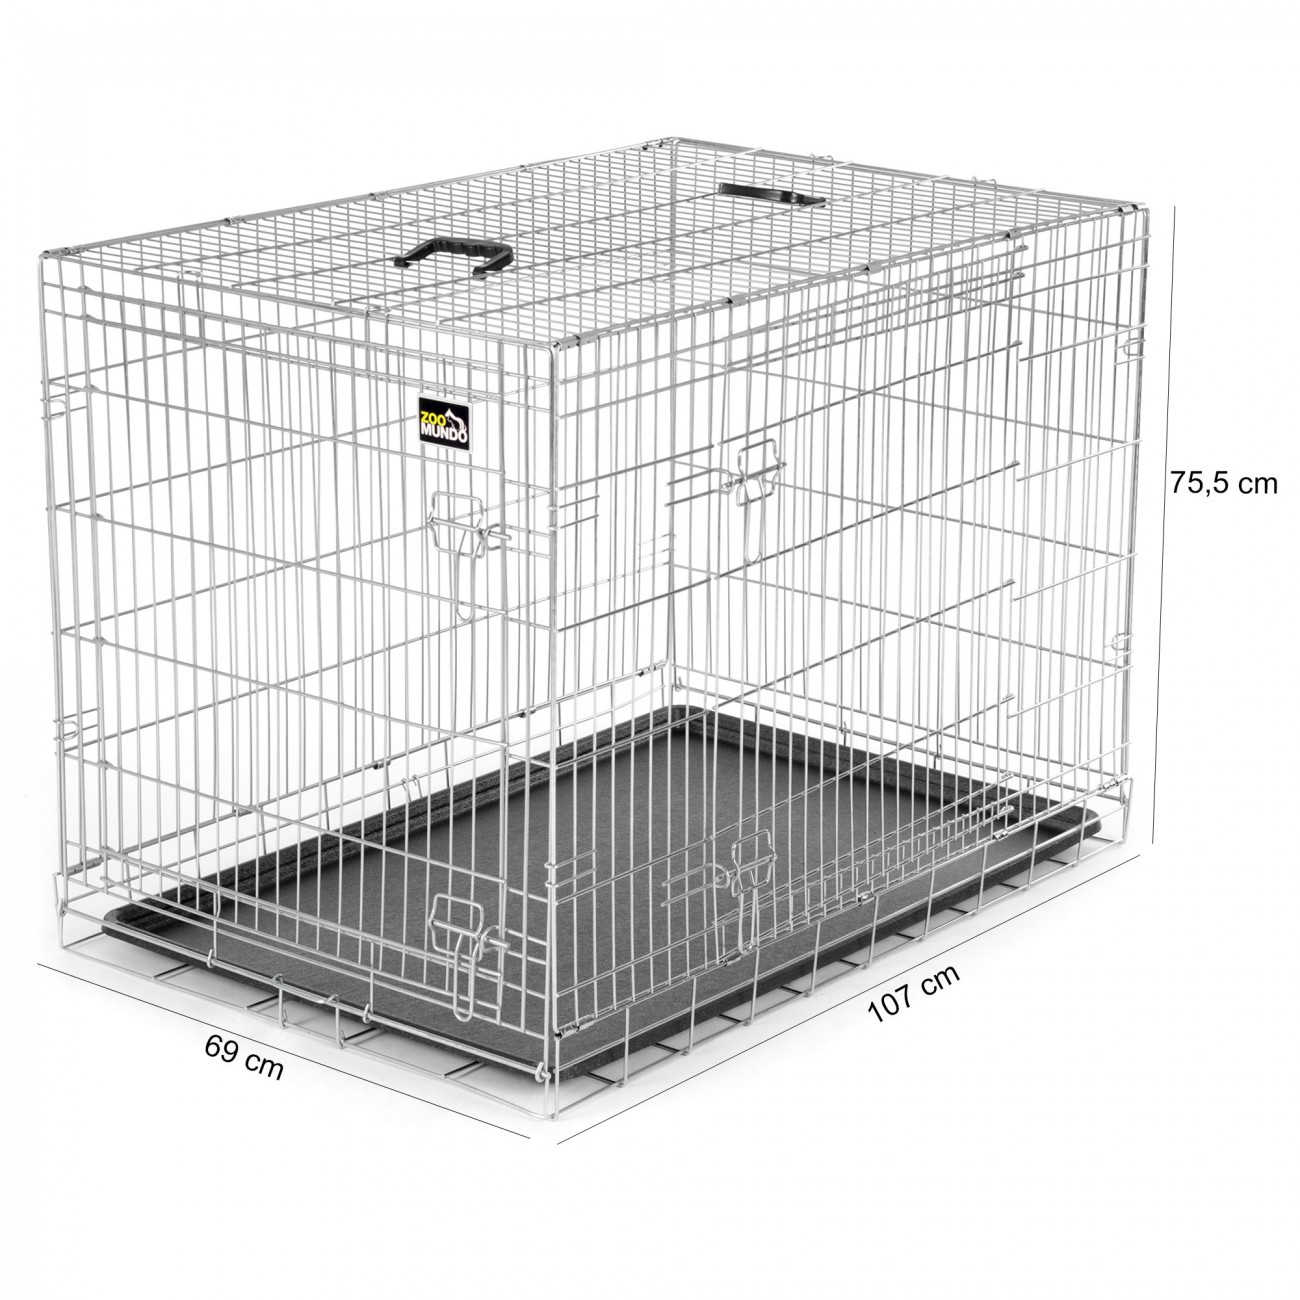 cage pour chiens caisse box de transport cage de animaux chiots pliable m tal ebay. Black Bedroom Furniture Sets. Home Design Ideas